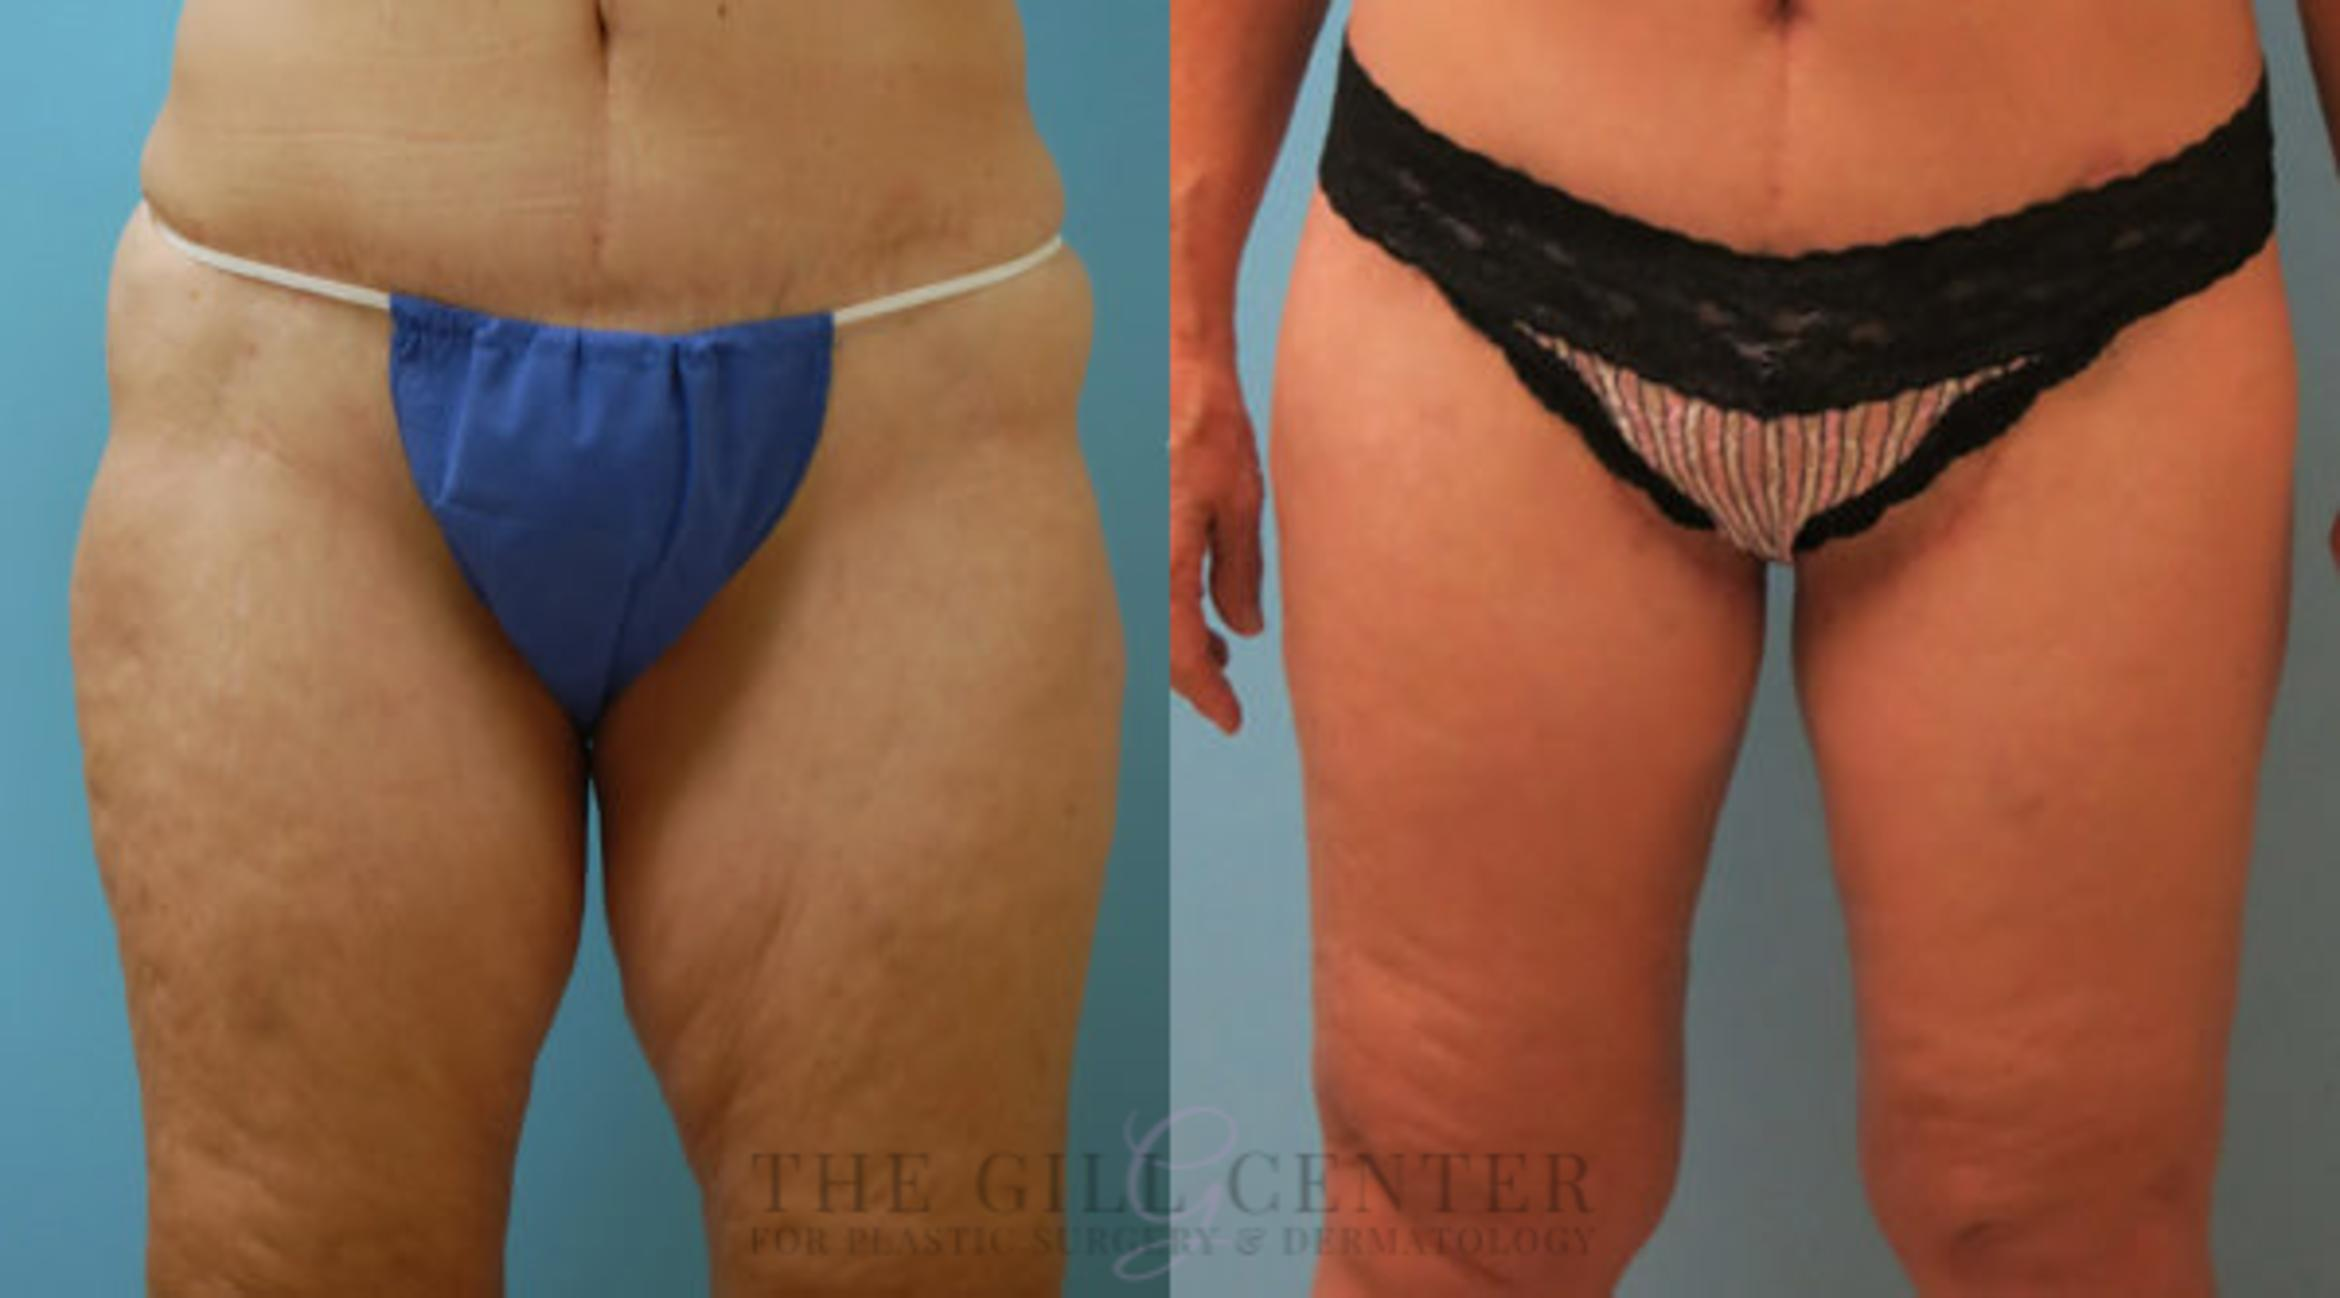 Thigh Lift Case 168 Before & After Front | Shenandoah, TX | The Gill Center for Plastic Surgery and Dermatology